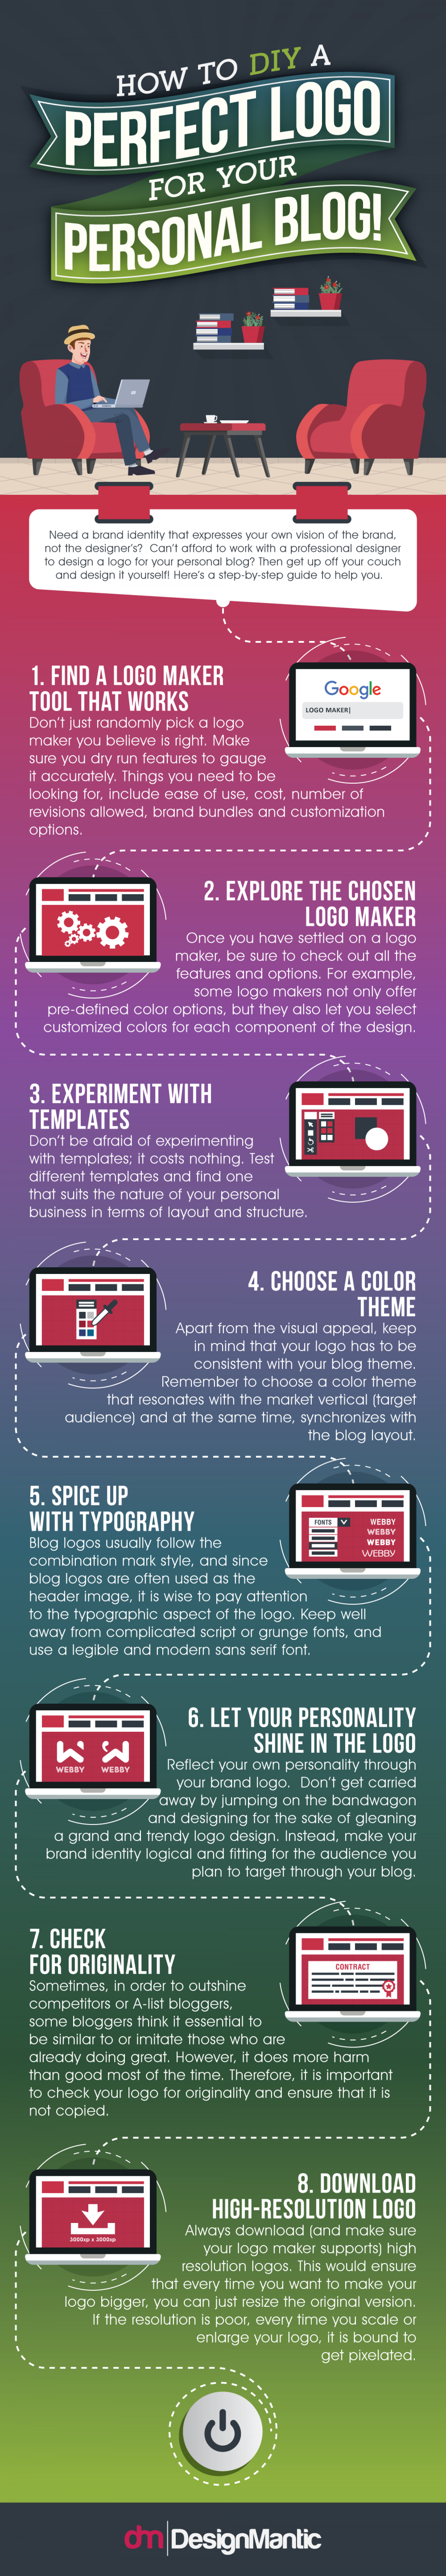 How To DIY A Perfect Logo For Your Personal Blog! Infographic